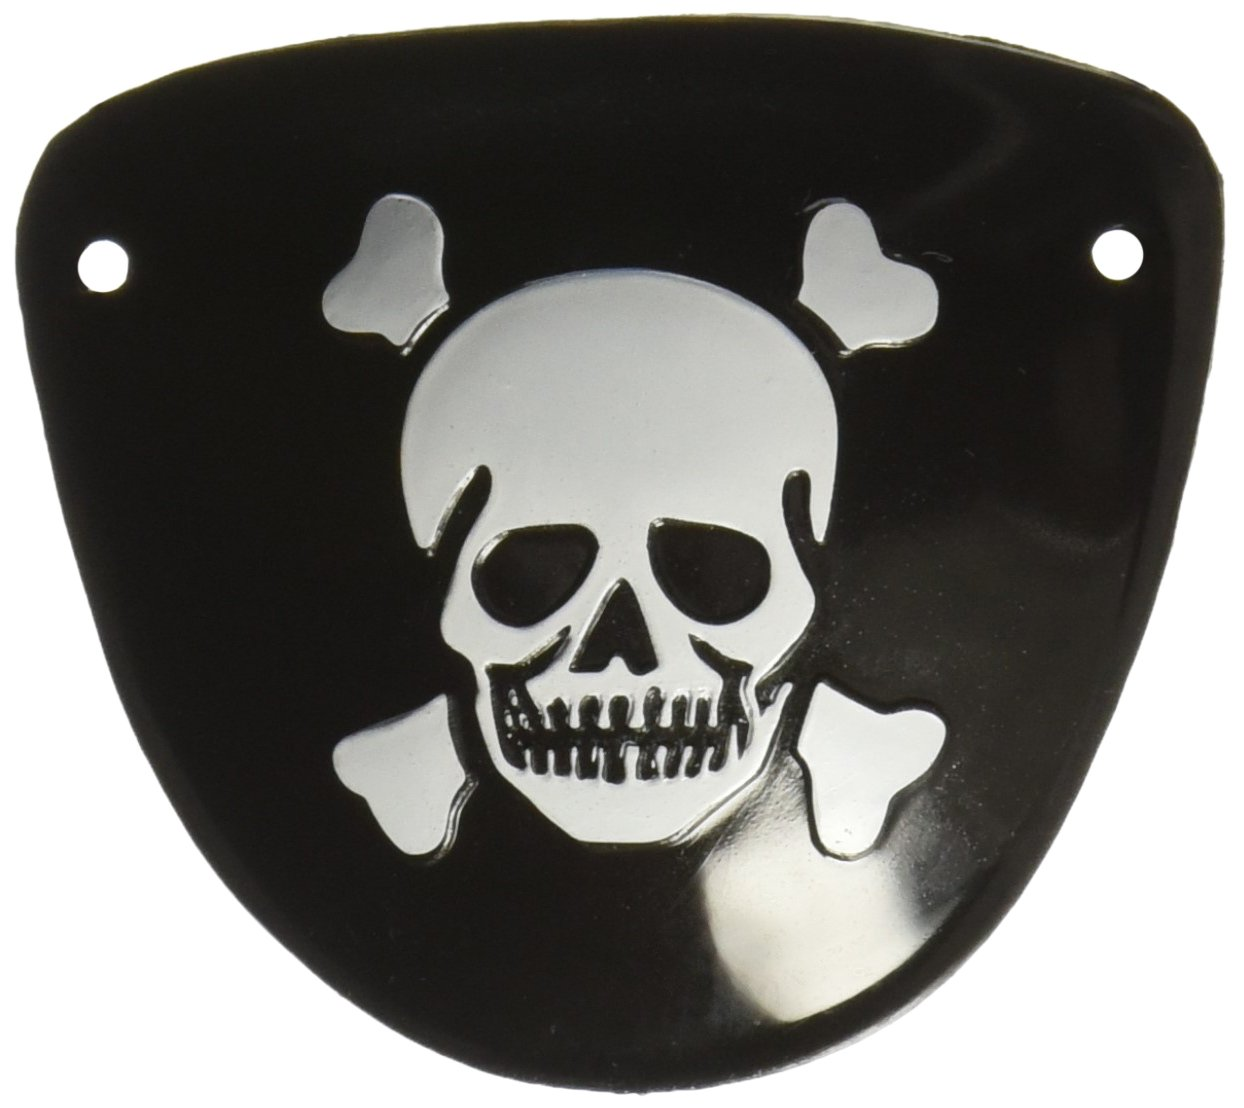 Pirate Party Skull Crossbones Eye Patch Favours, Plastic, 2' x 2', Pack of 12 2 x 2 Notions - In Network 390317